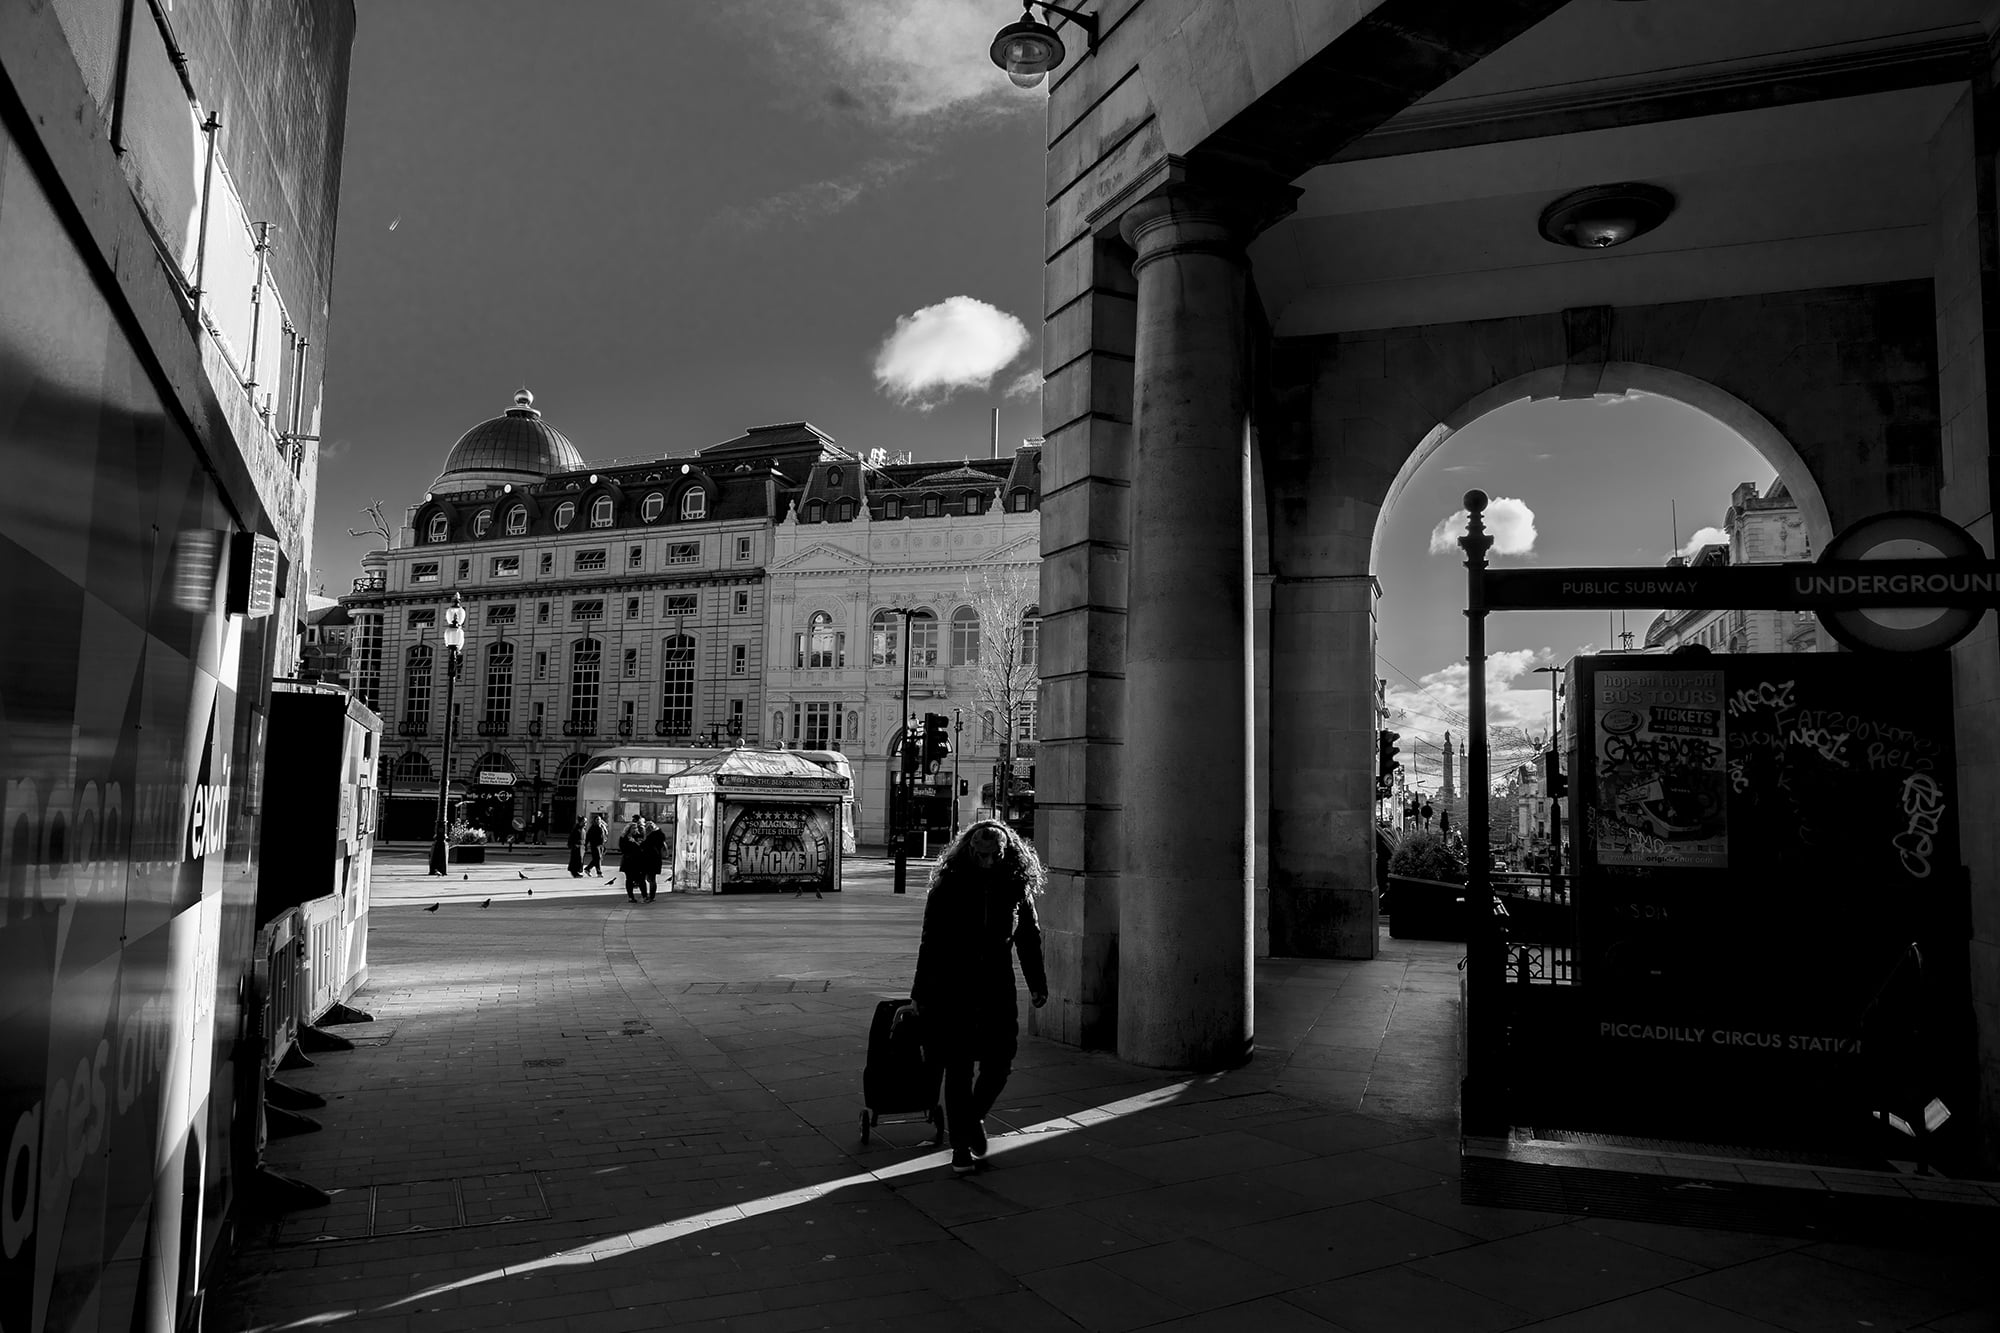 Piccadilly 2